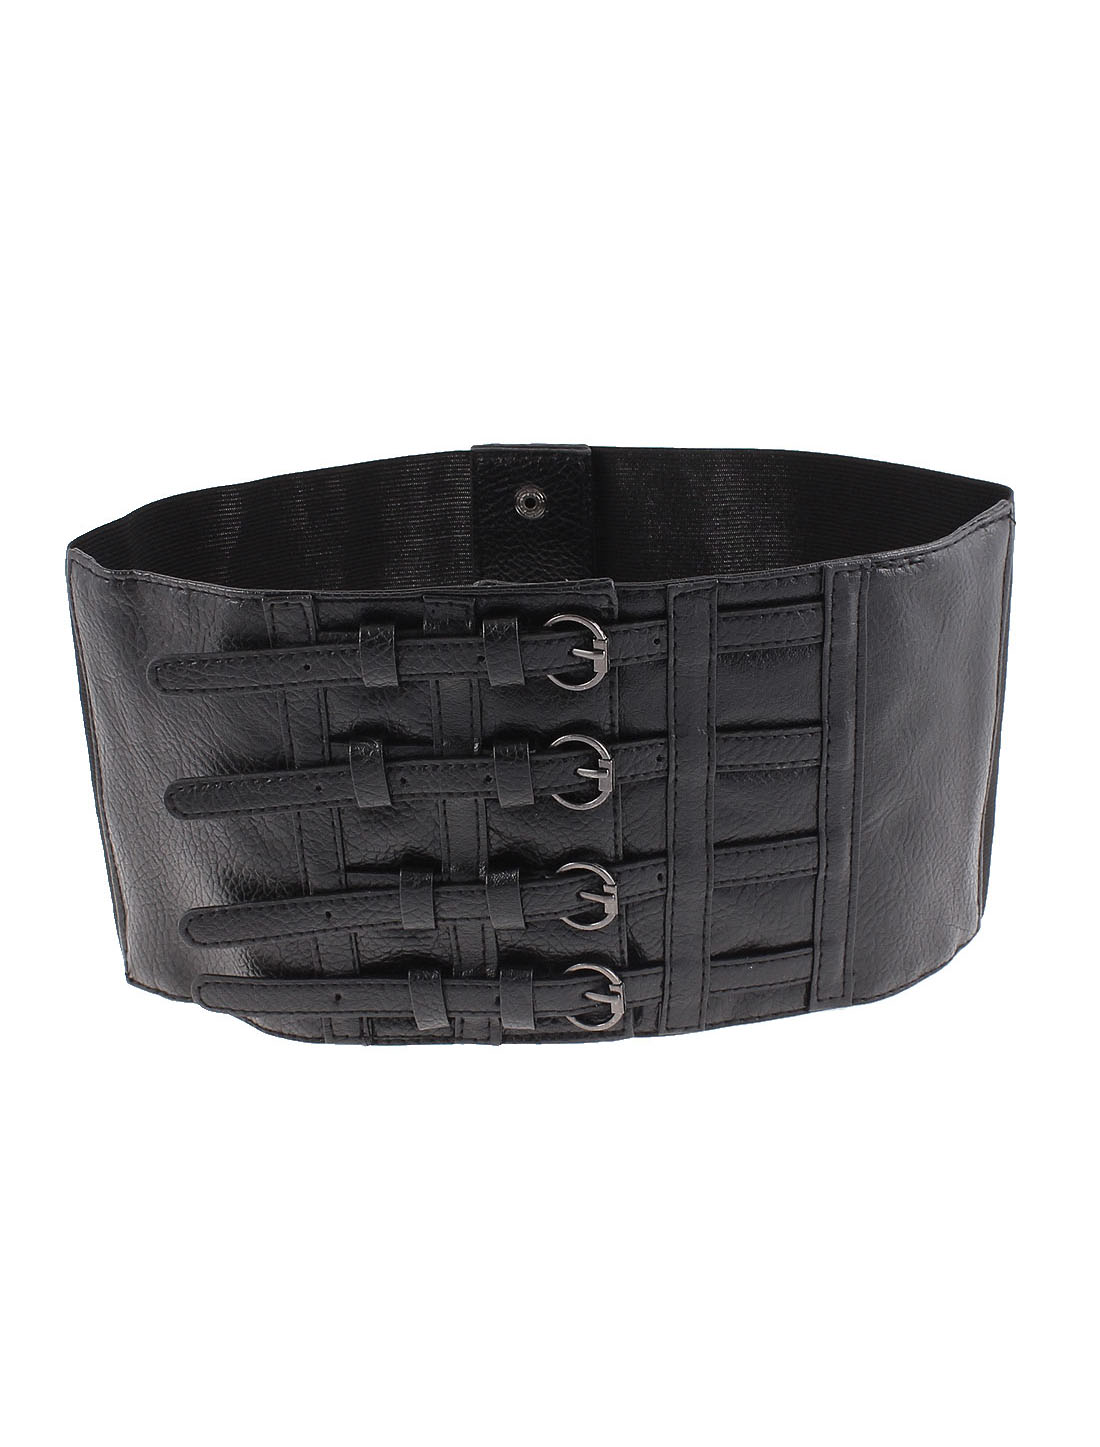 Lady Press Button 4 Buckles Elastic Corset Waist Cinch Belt Band 70cm Length